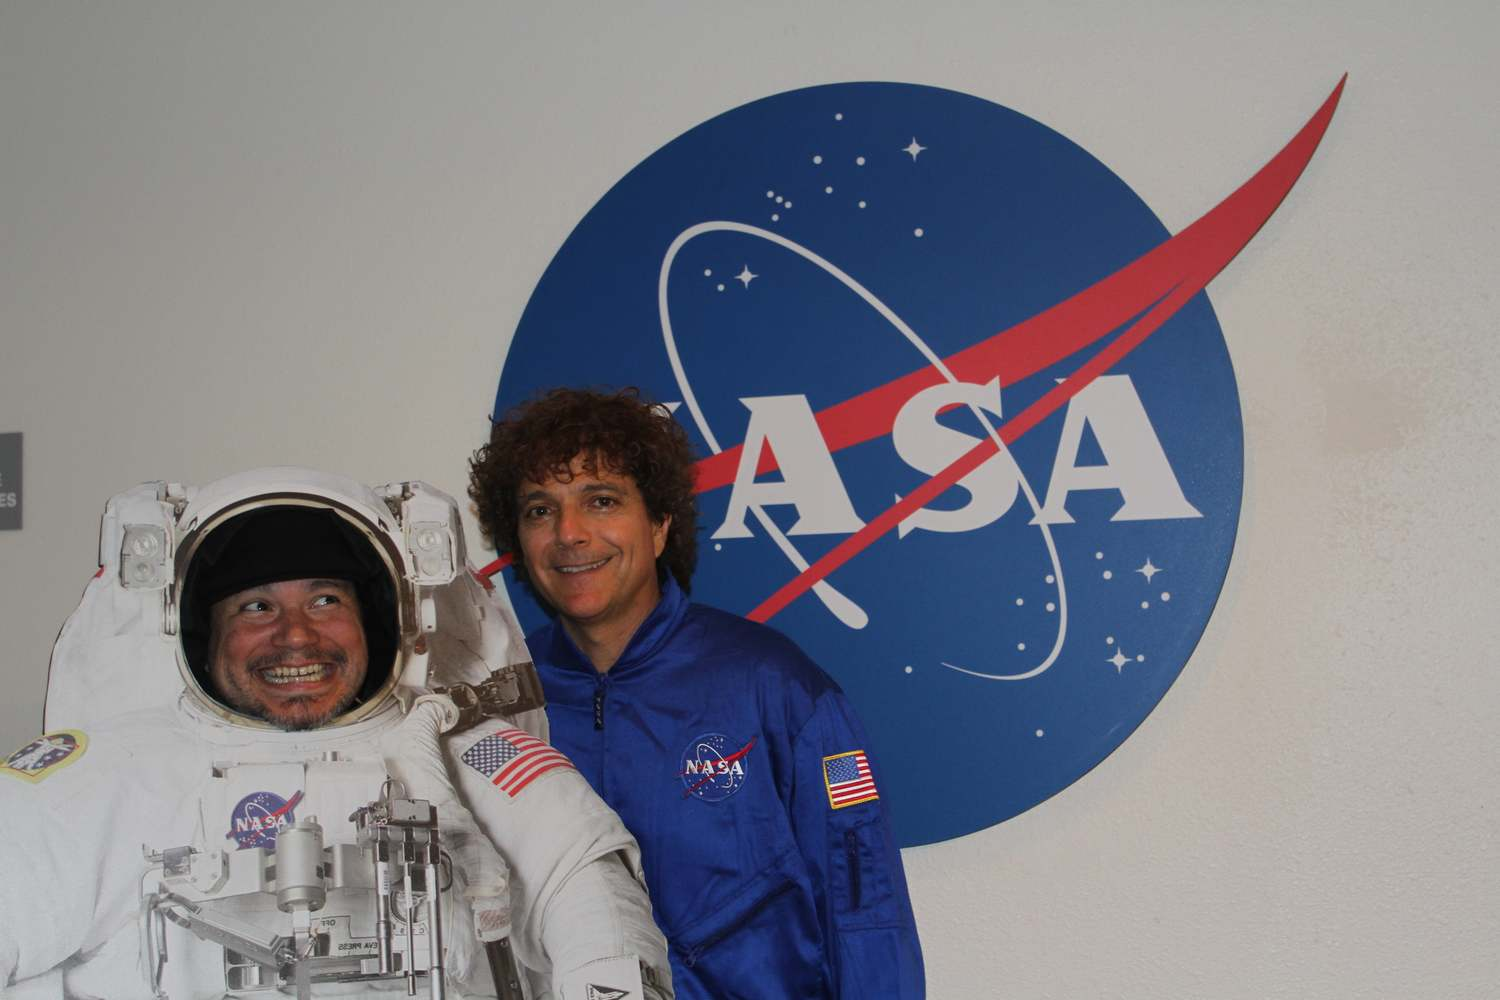 Asdru Sierra of Ozomatli (left) in an astronaut suit and Anthony Marinelli (right) in a flight-suit, at the NASA Ames, Conrad Foundation Spirit of Innovation Summit, Mountain View, CA, March, 2012.